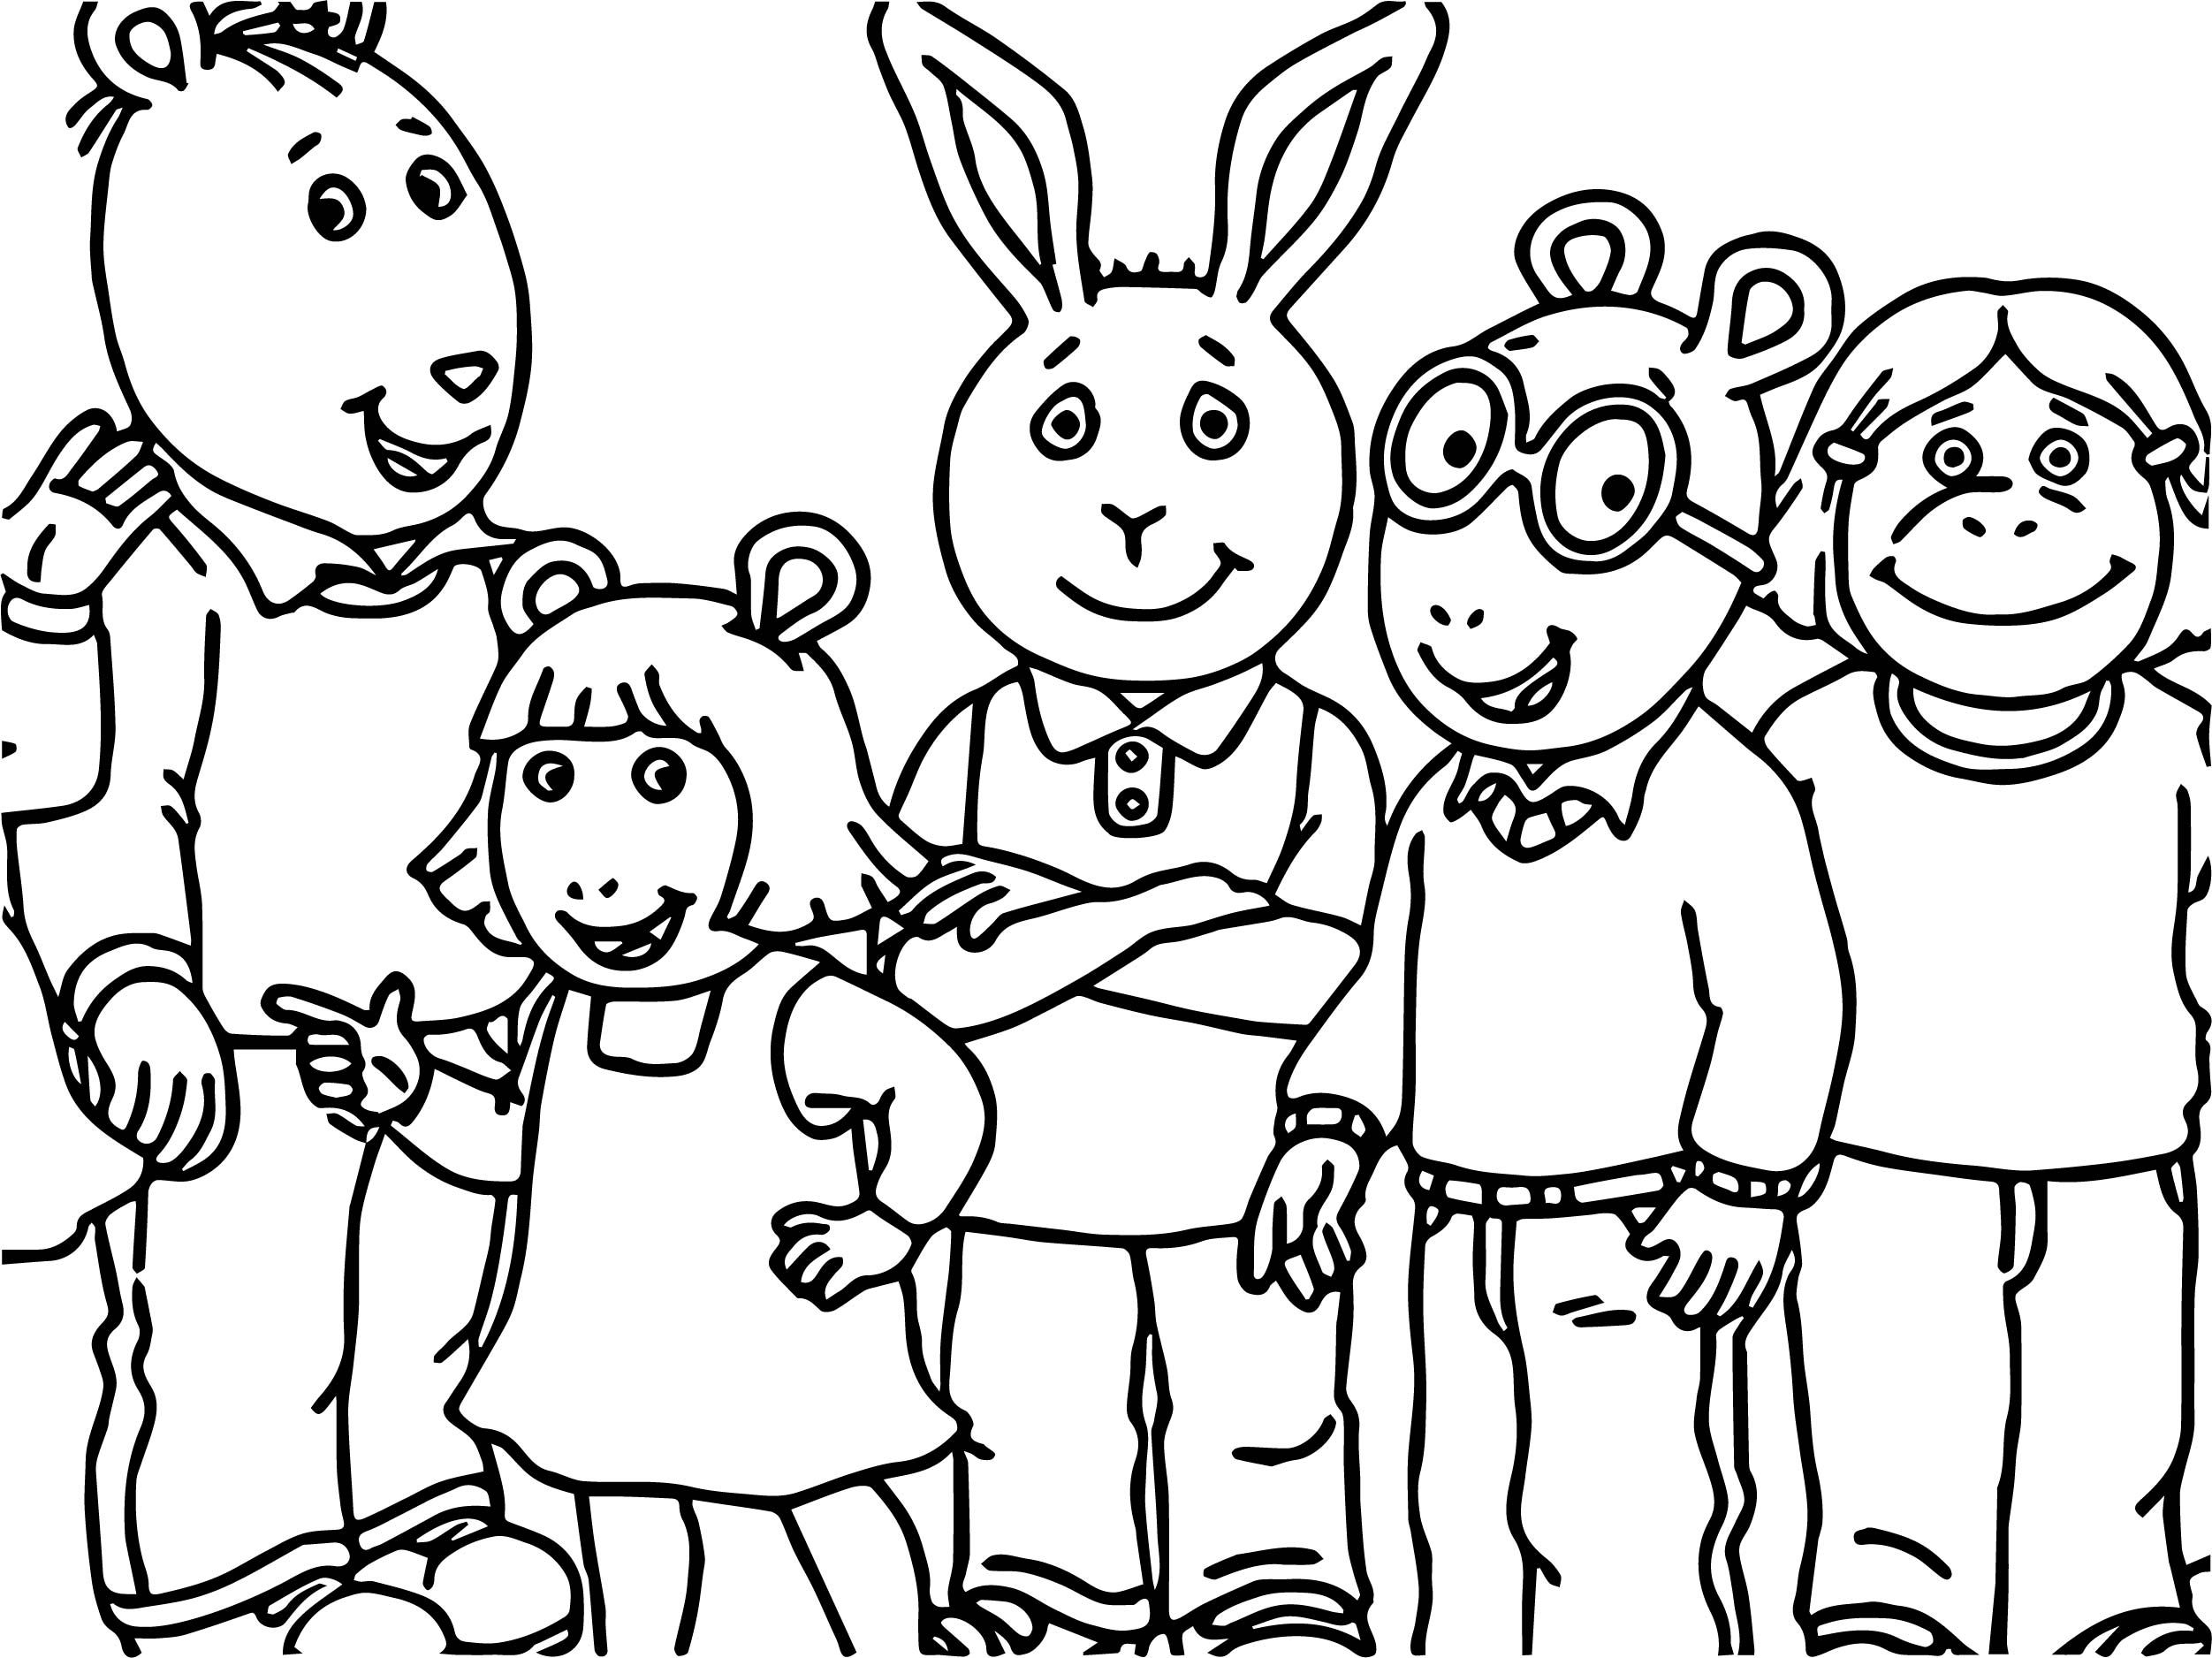 Free Arthur Coloring Pages - Inerletboo